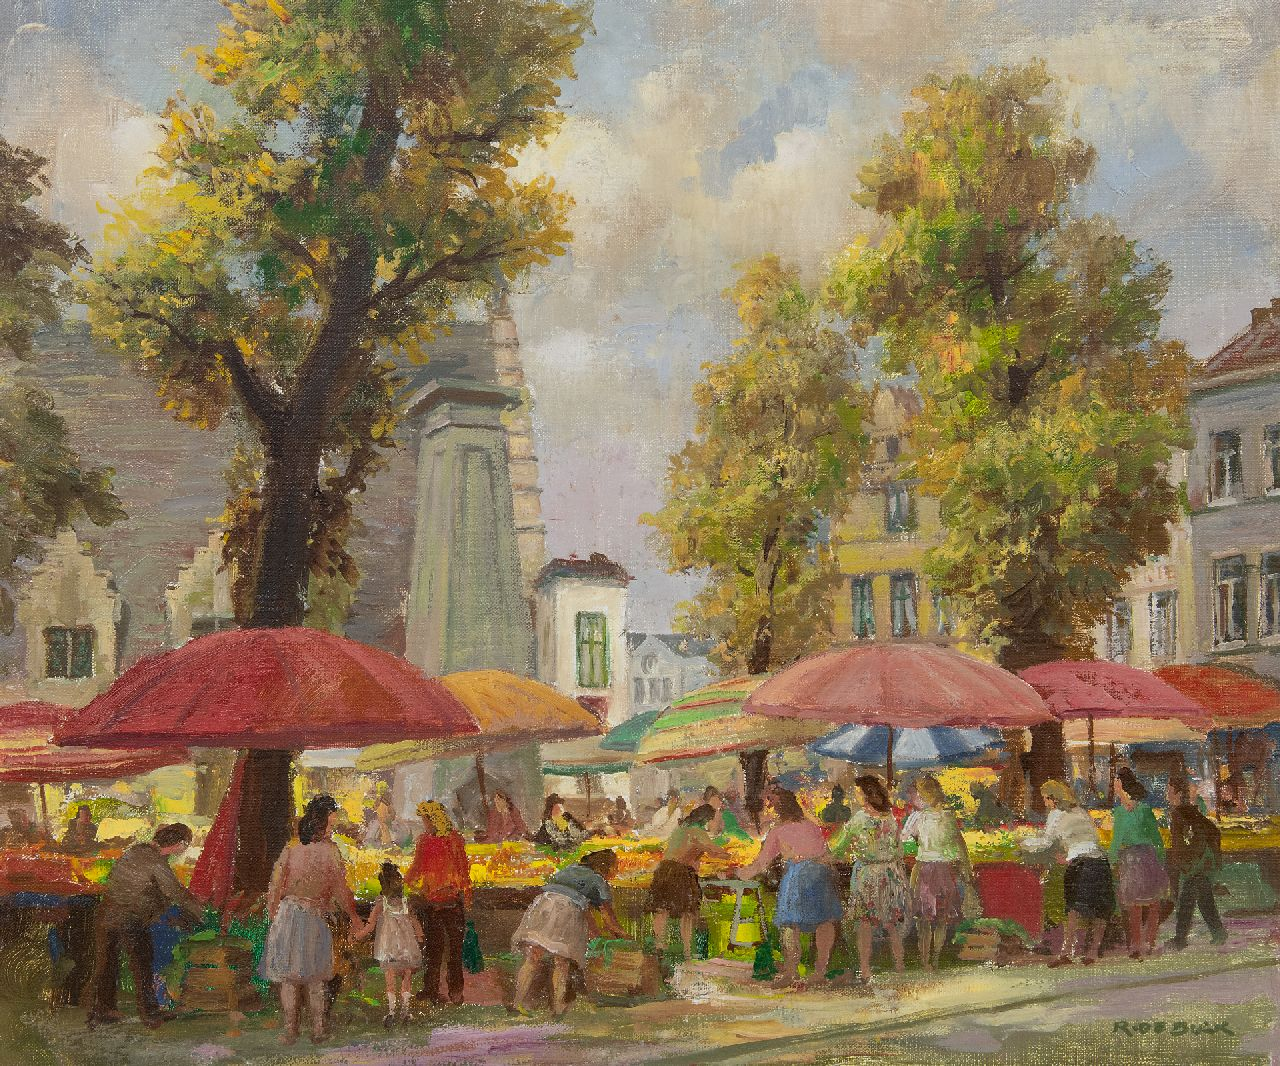 Buck R. de | Raphaël de Buck | Paintings offered for sale | The Groentemarkt in Ghent (Flanders), oil on canvas 50.3 x 60.2 cm, signed l.r.